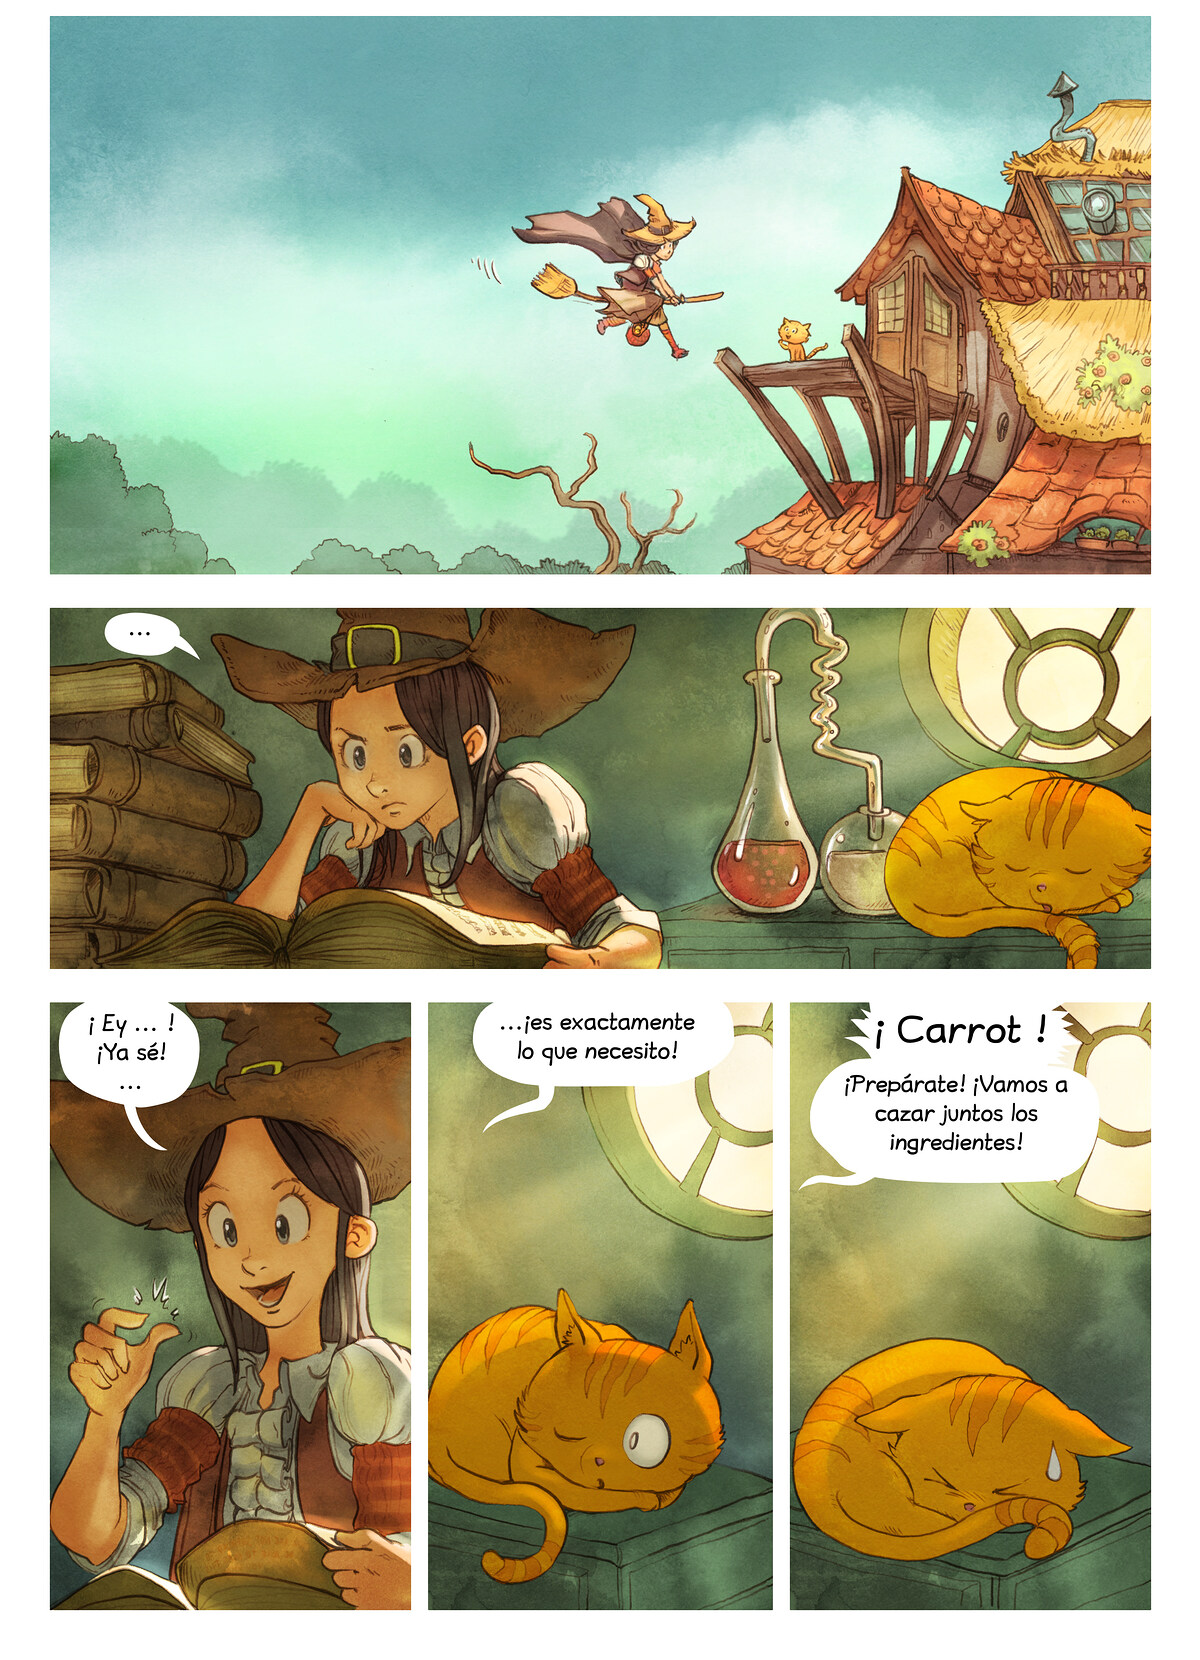 A webcomic page of Pepper&Carrot, episodio 3 [es], página 4